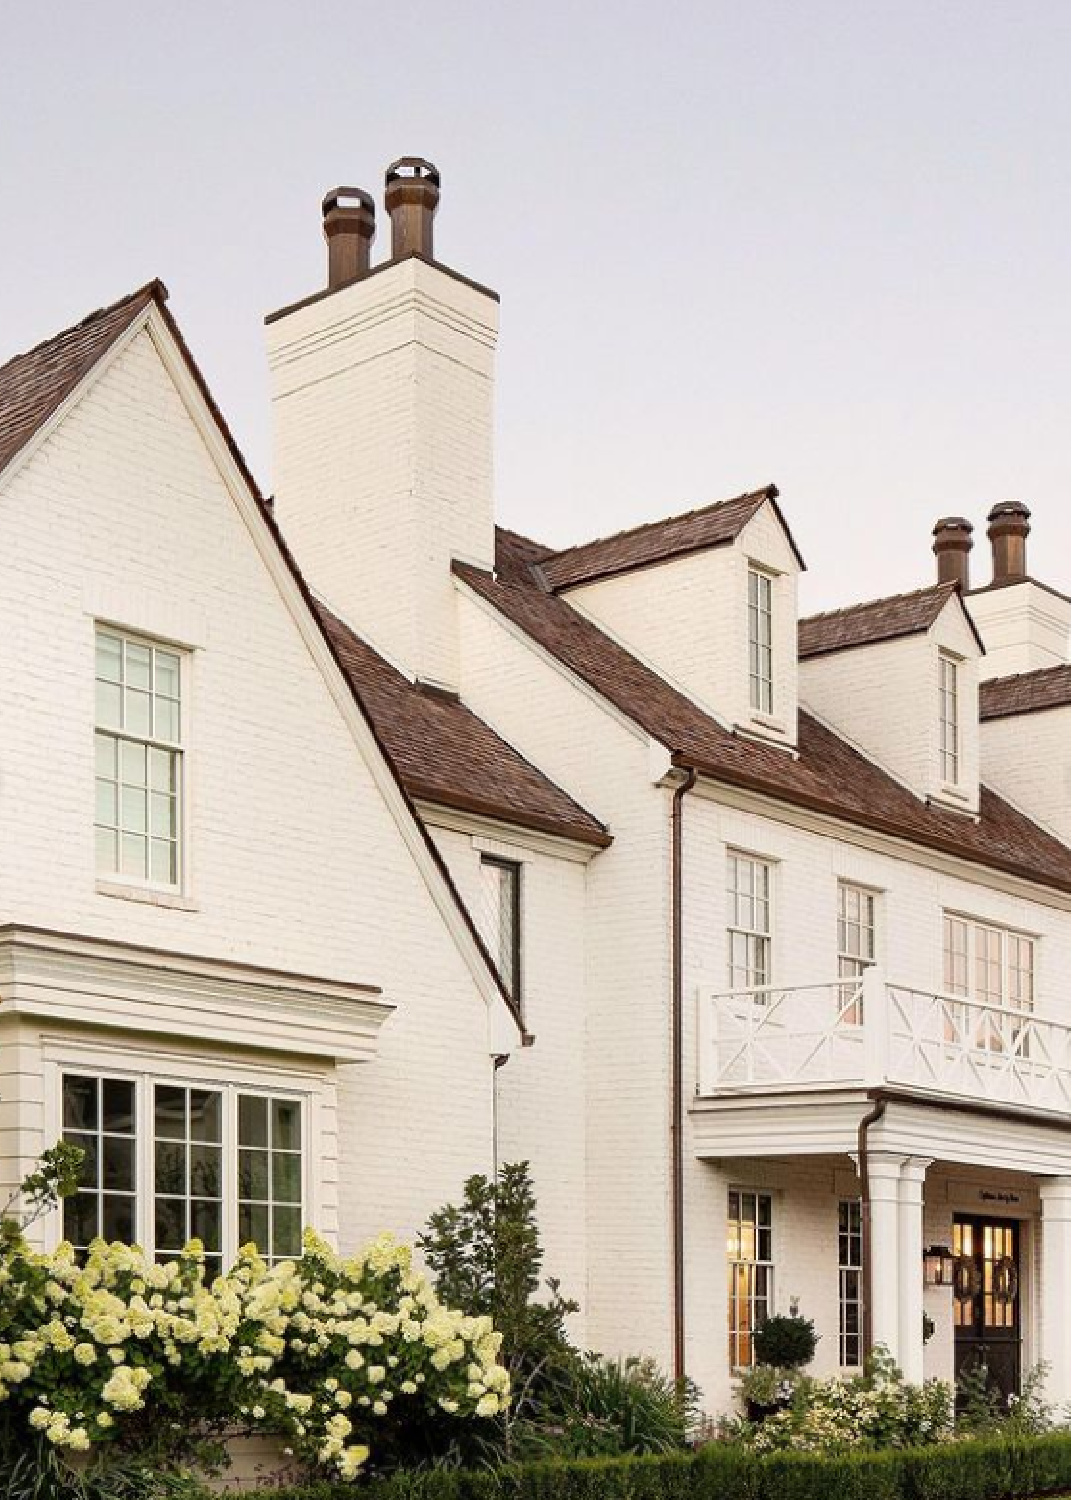 Traditional style white brick painted house exterior with dormers and timeless style by The Fox Group. #houseexteriors #whitebrick #whitehouses